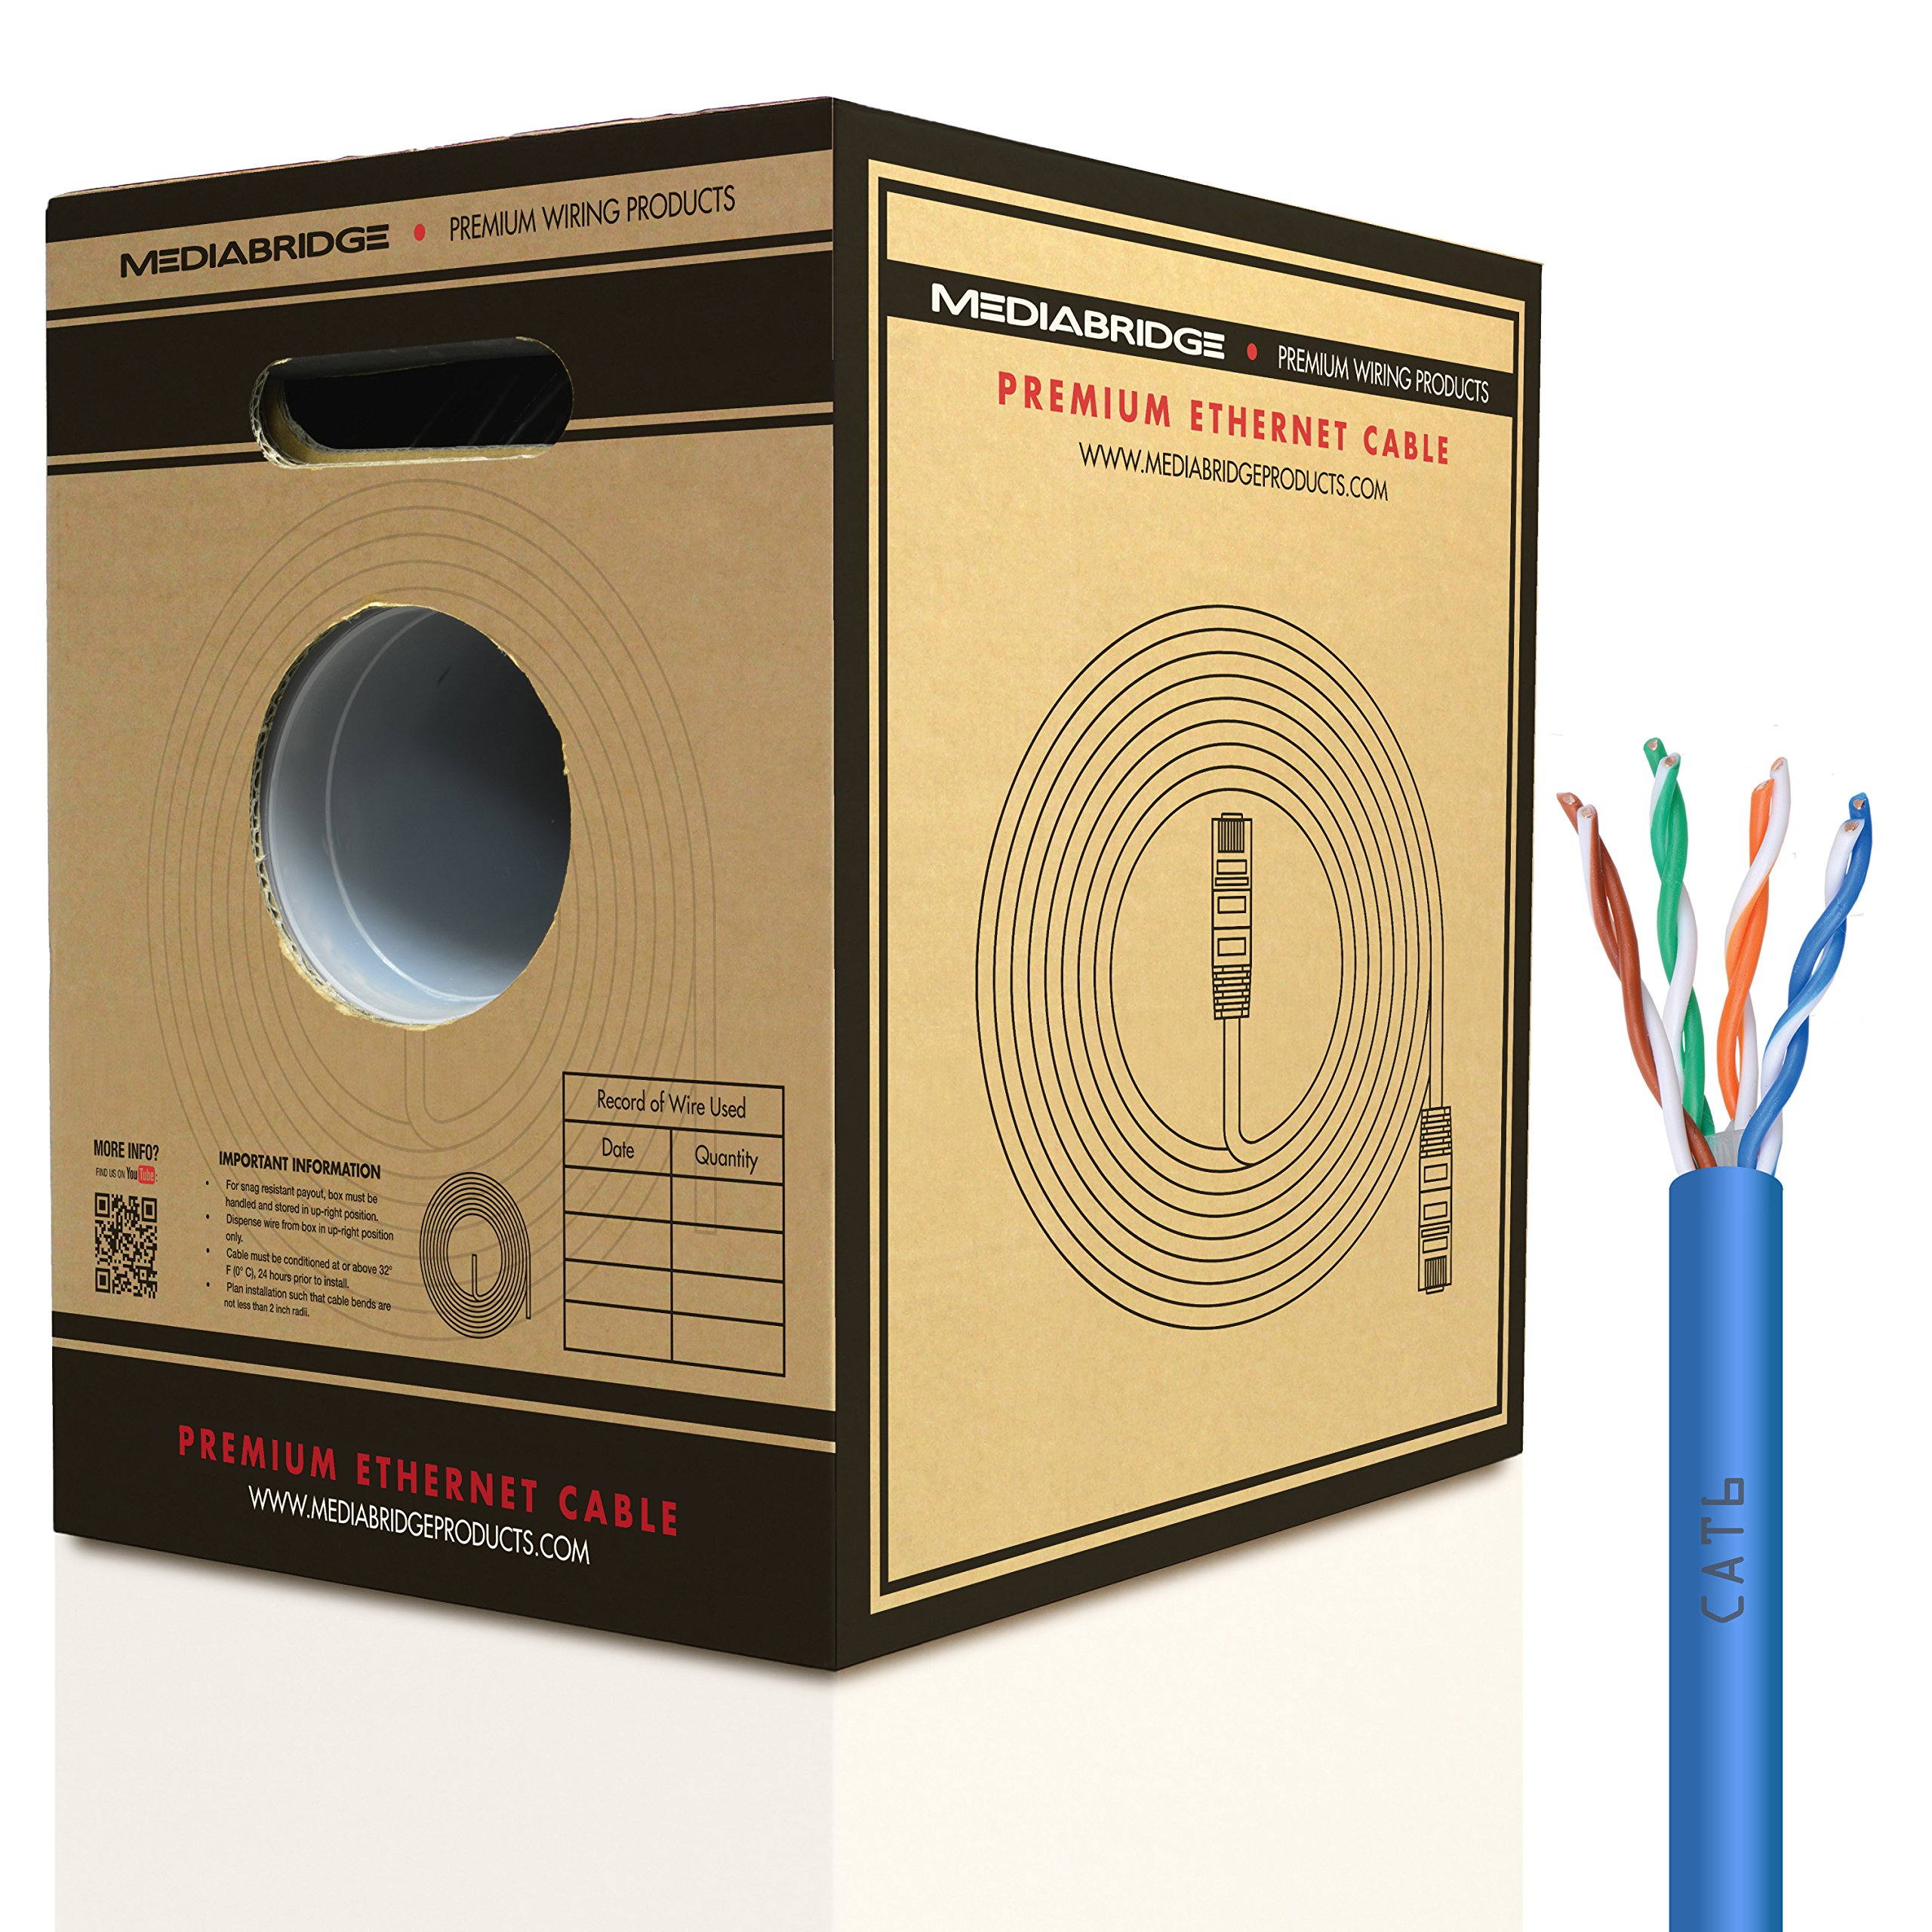 Mediabridge Pure Copper Cat6 Cable (500 Feet, Blue) - 10Gbps Ethernet, Solid, In-Wall Rated, w/Premium Snagless Pull-Out Box - (Part# C6-500-BLUE)